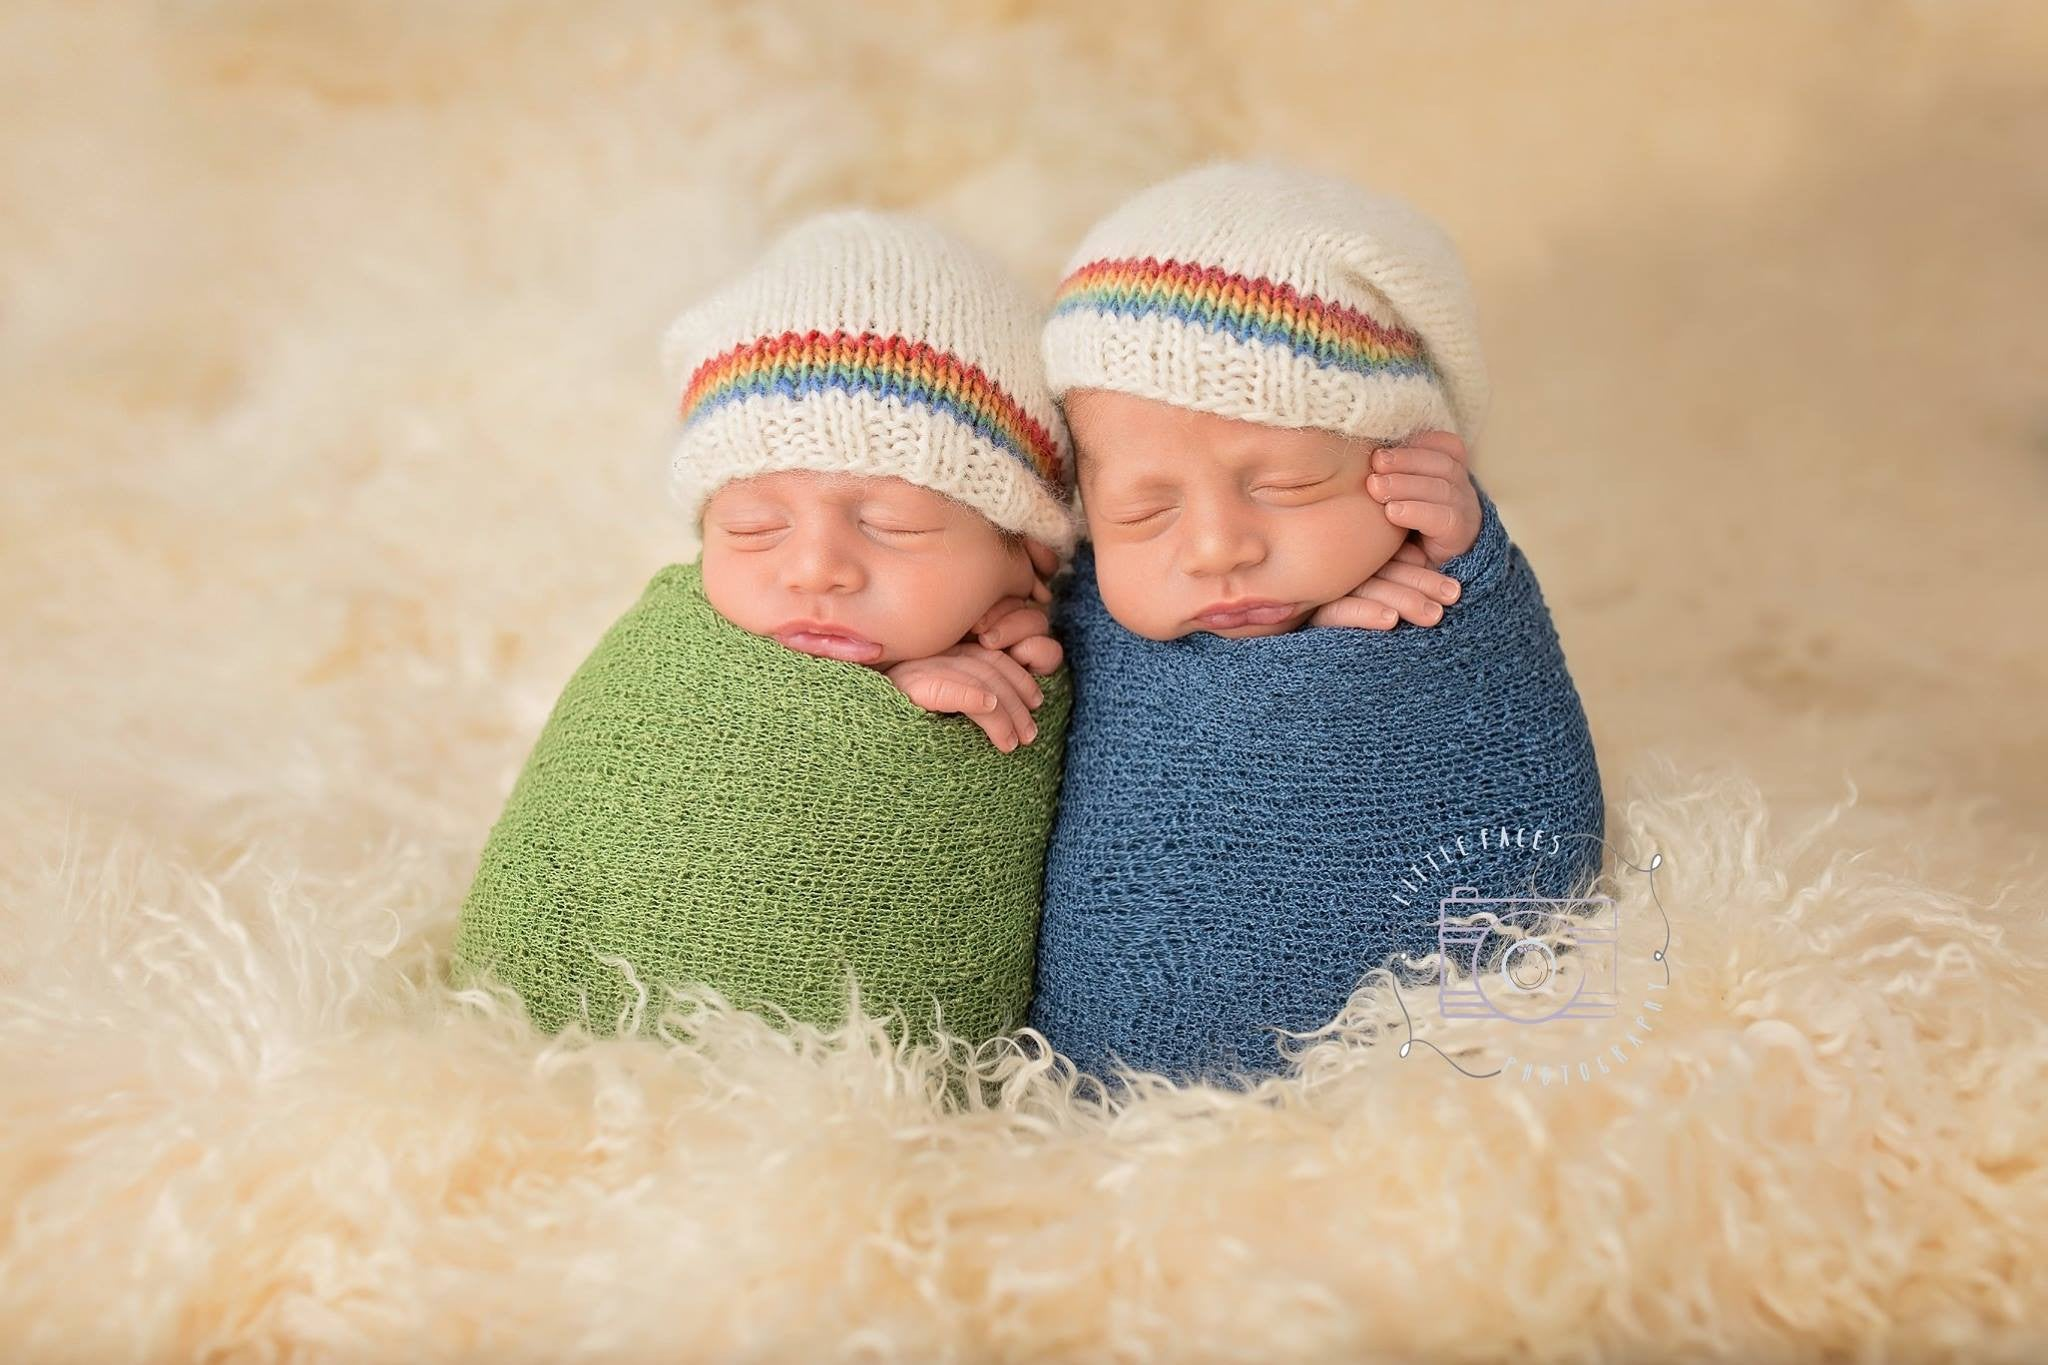 bf228b23982 Rainbow Baby Hat - Rainbow Stripe - Newborn Rainbow Baby Photo Prop - Knit  Photography Props